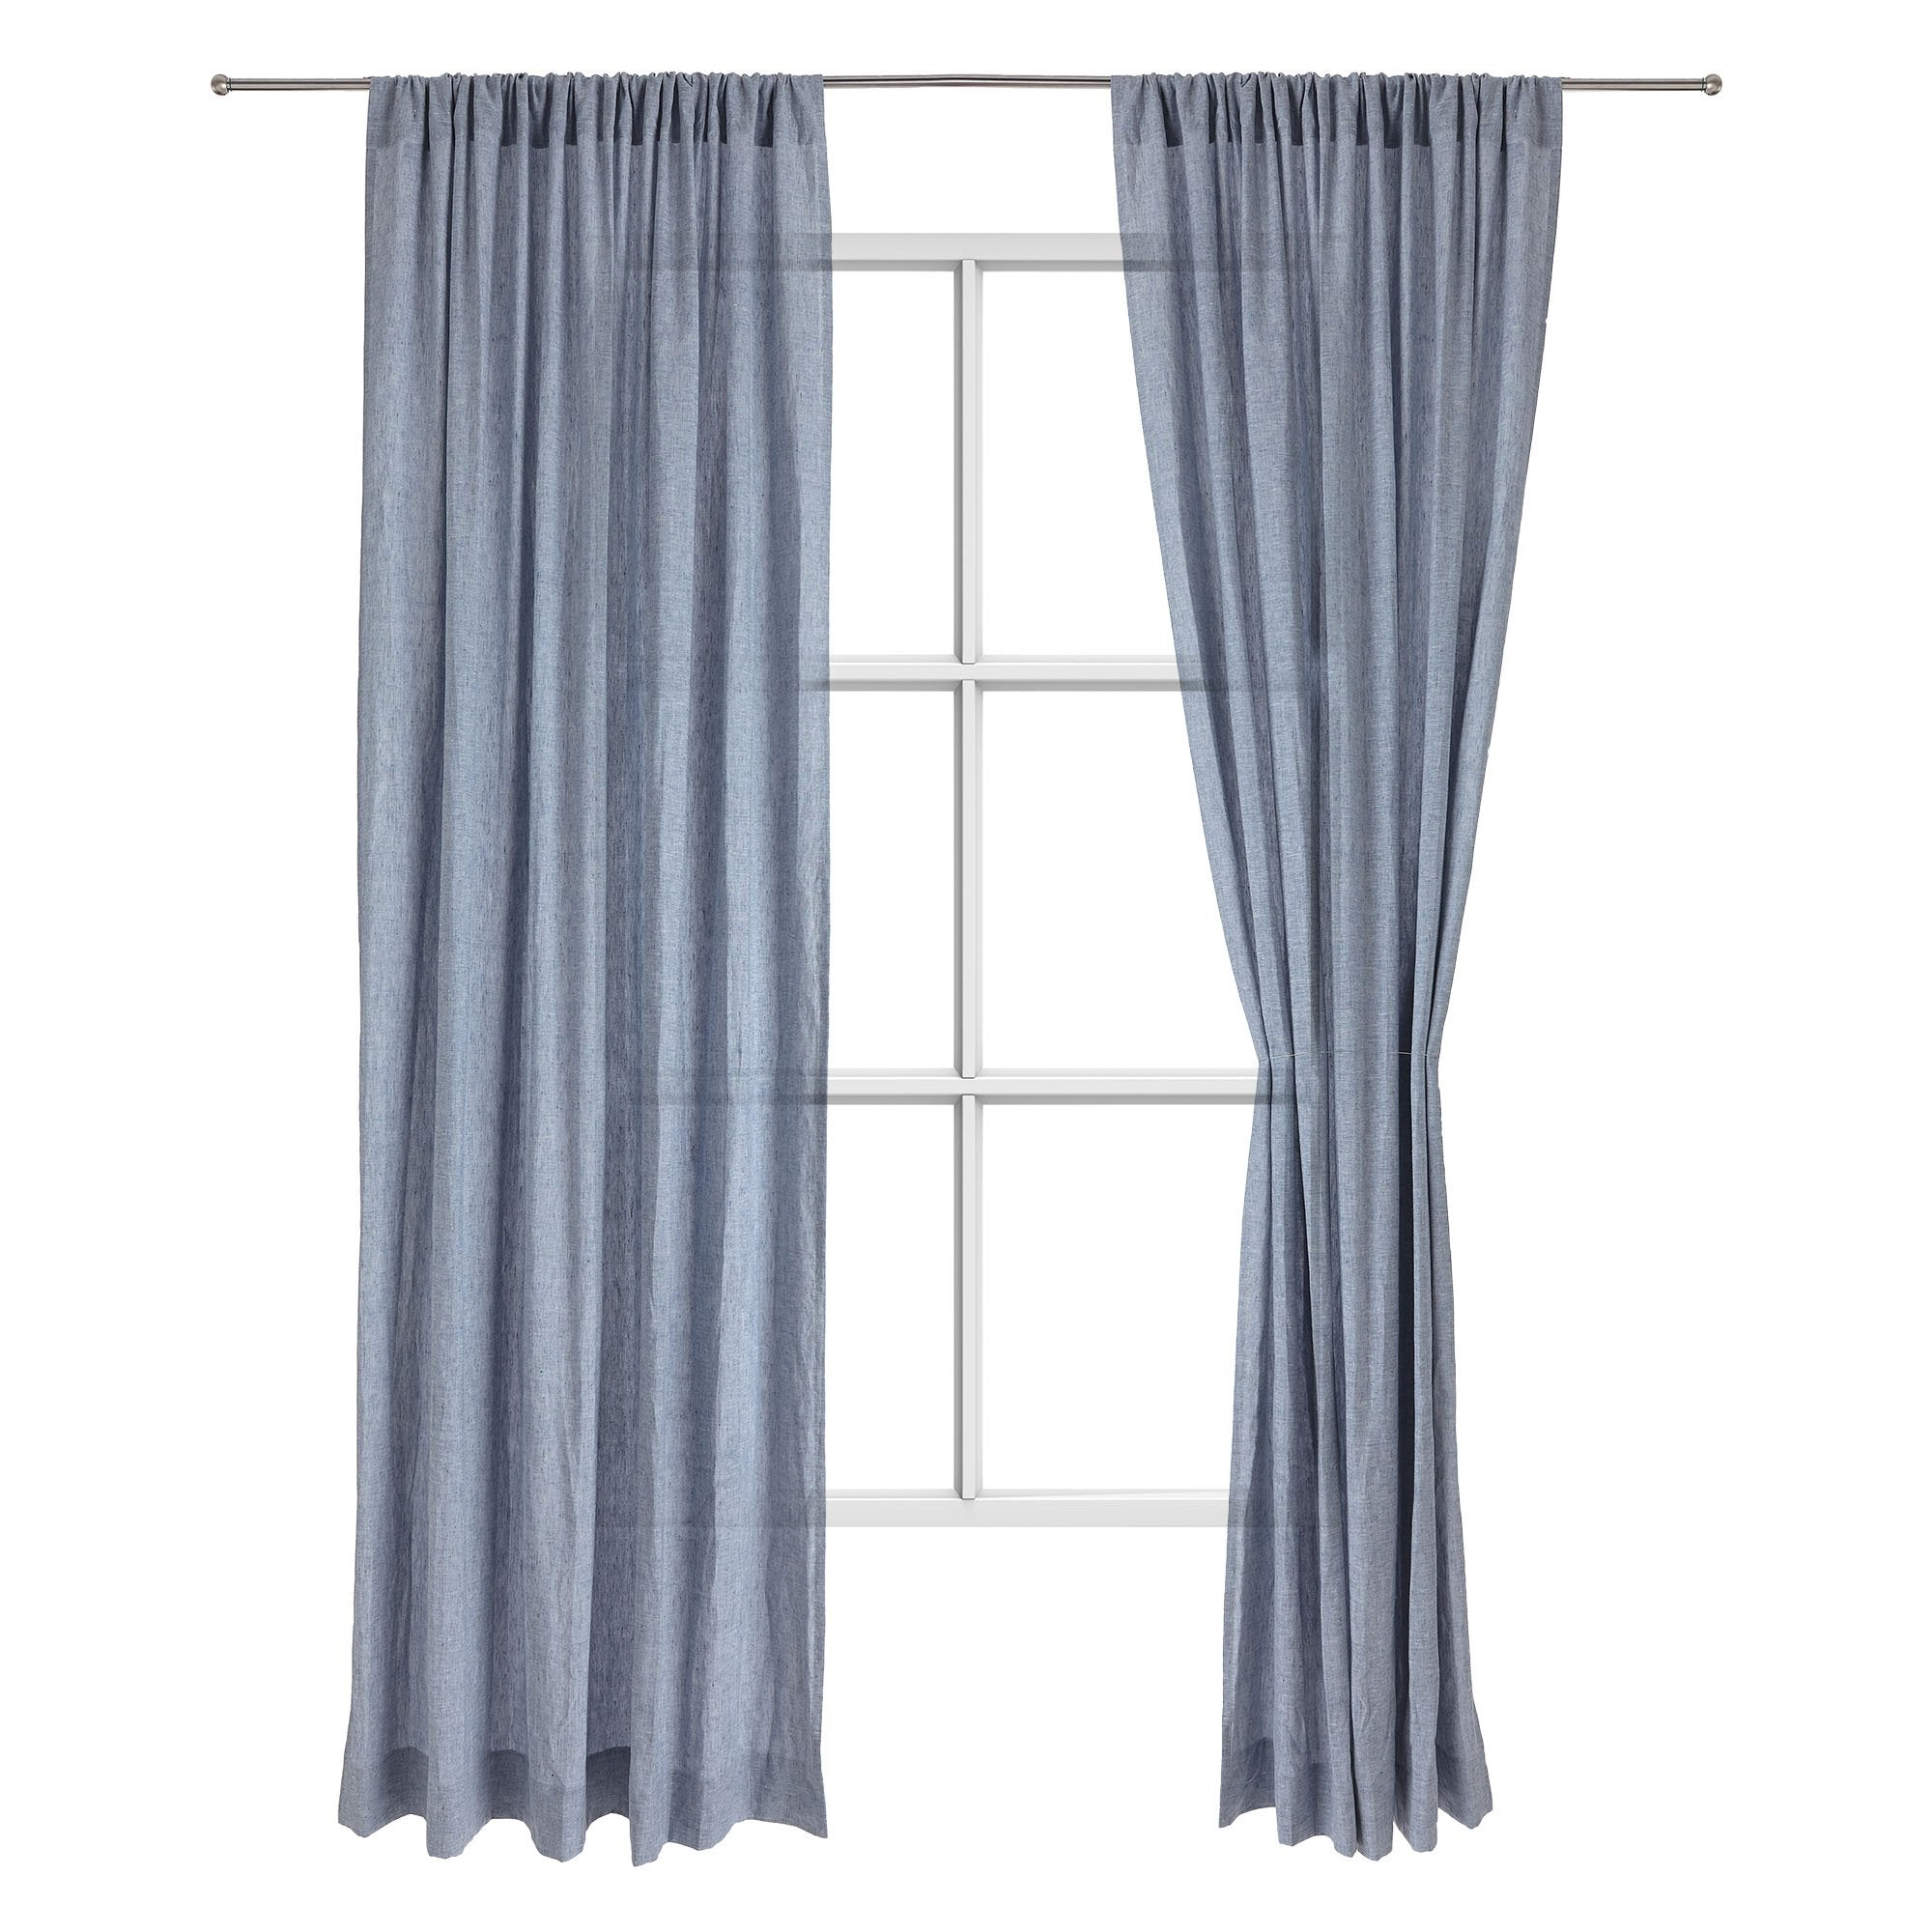 Sameiro linen curtain dark grey blue, 100% linen